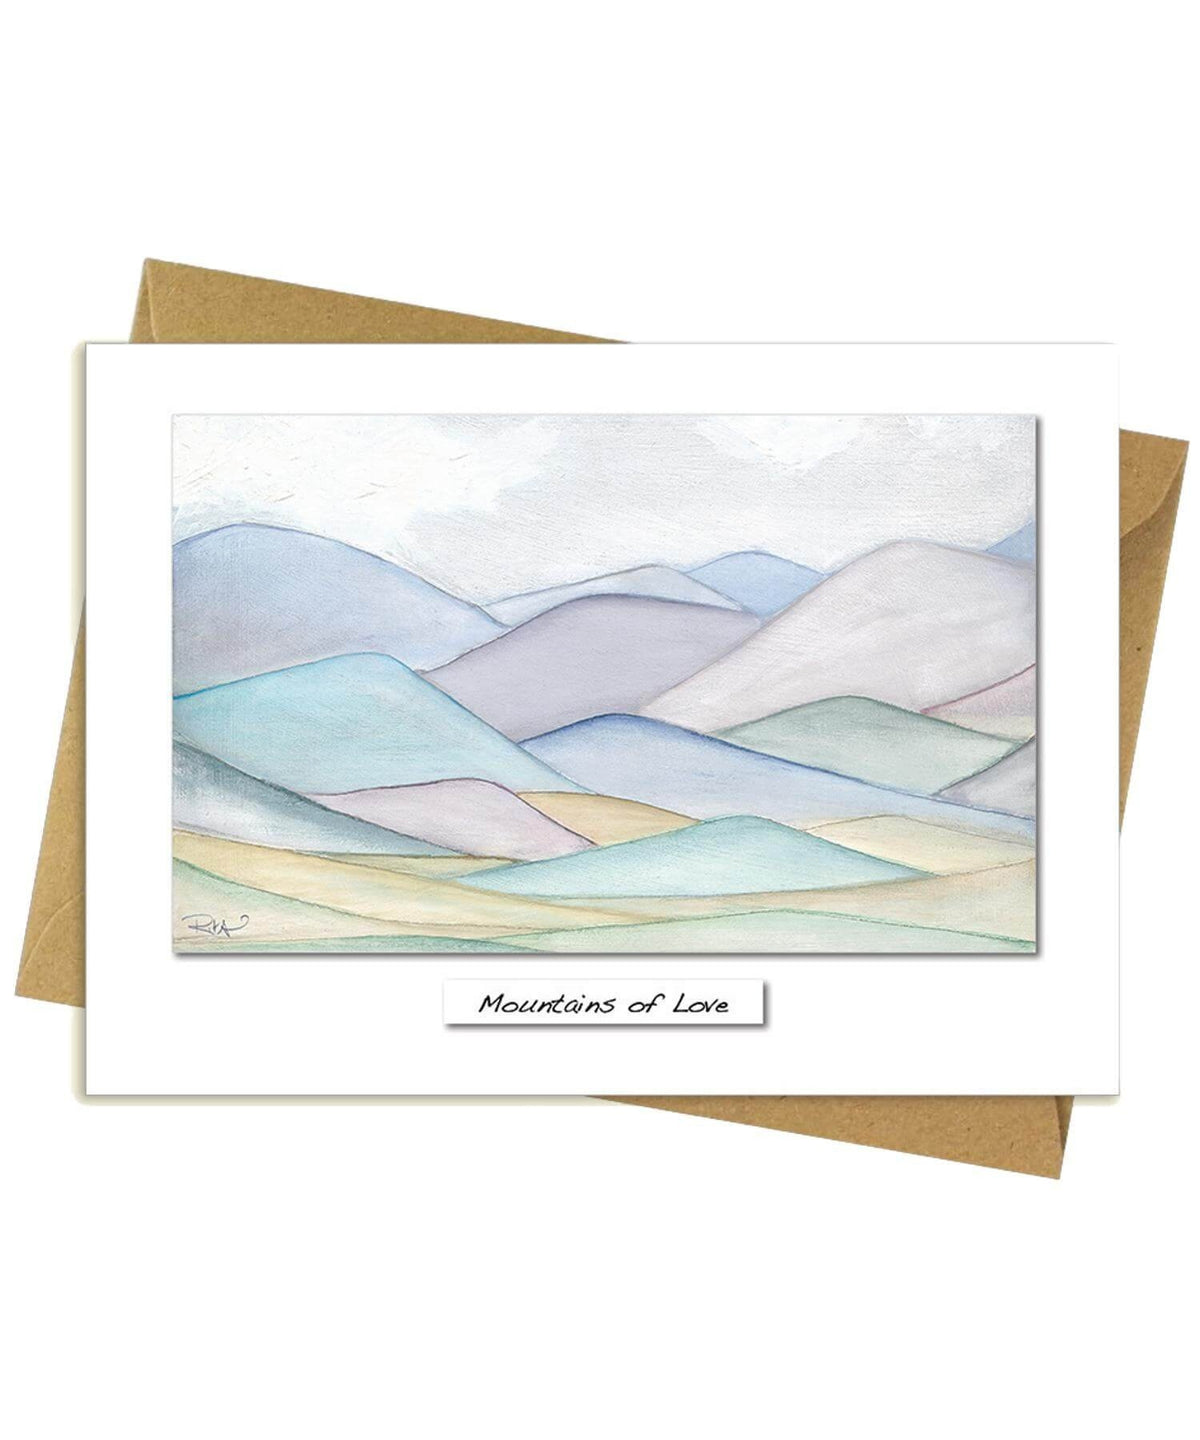 Greeting Card - Mountains of Love - [Rita Oates] - Greeting Cards - Irish Gifts